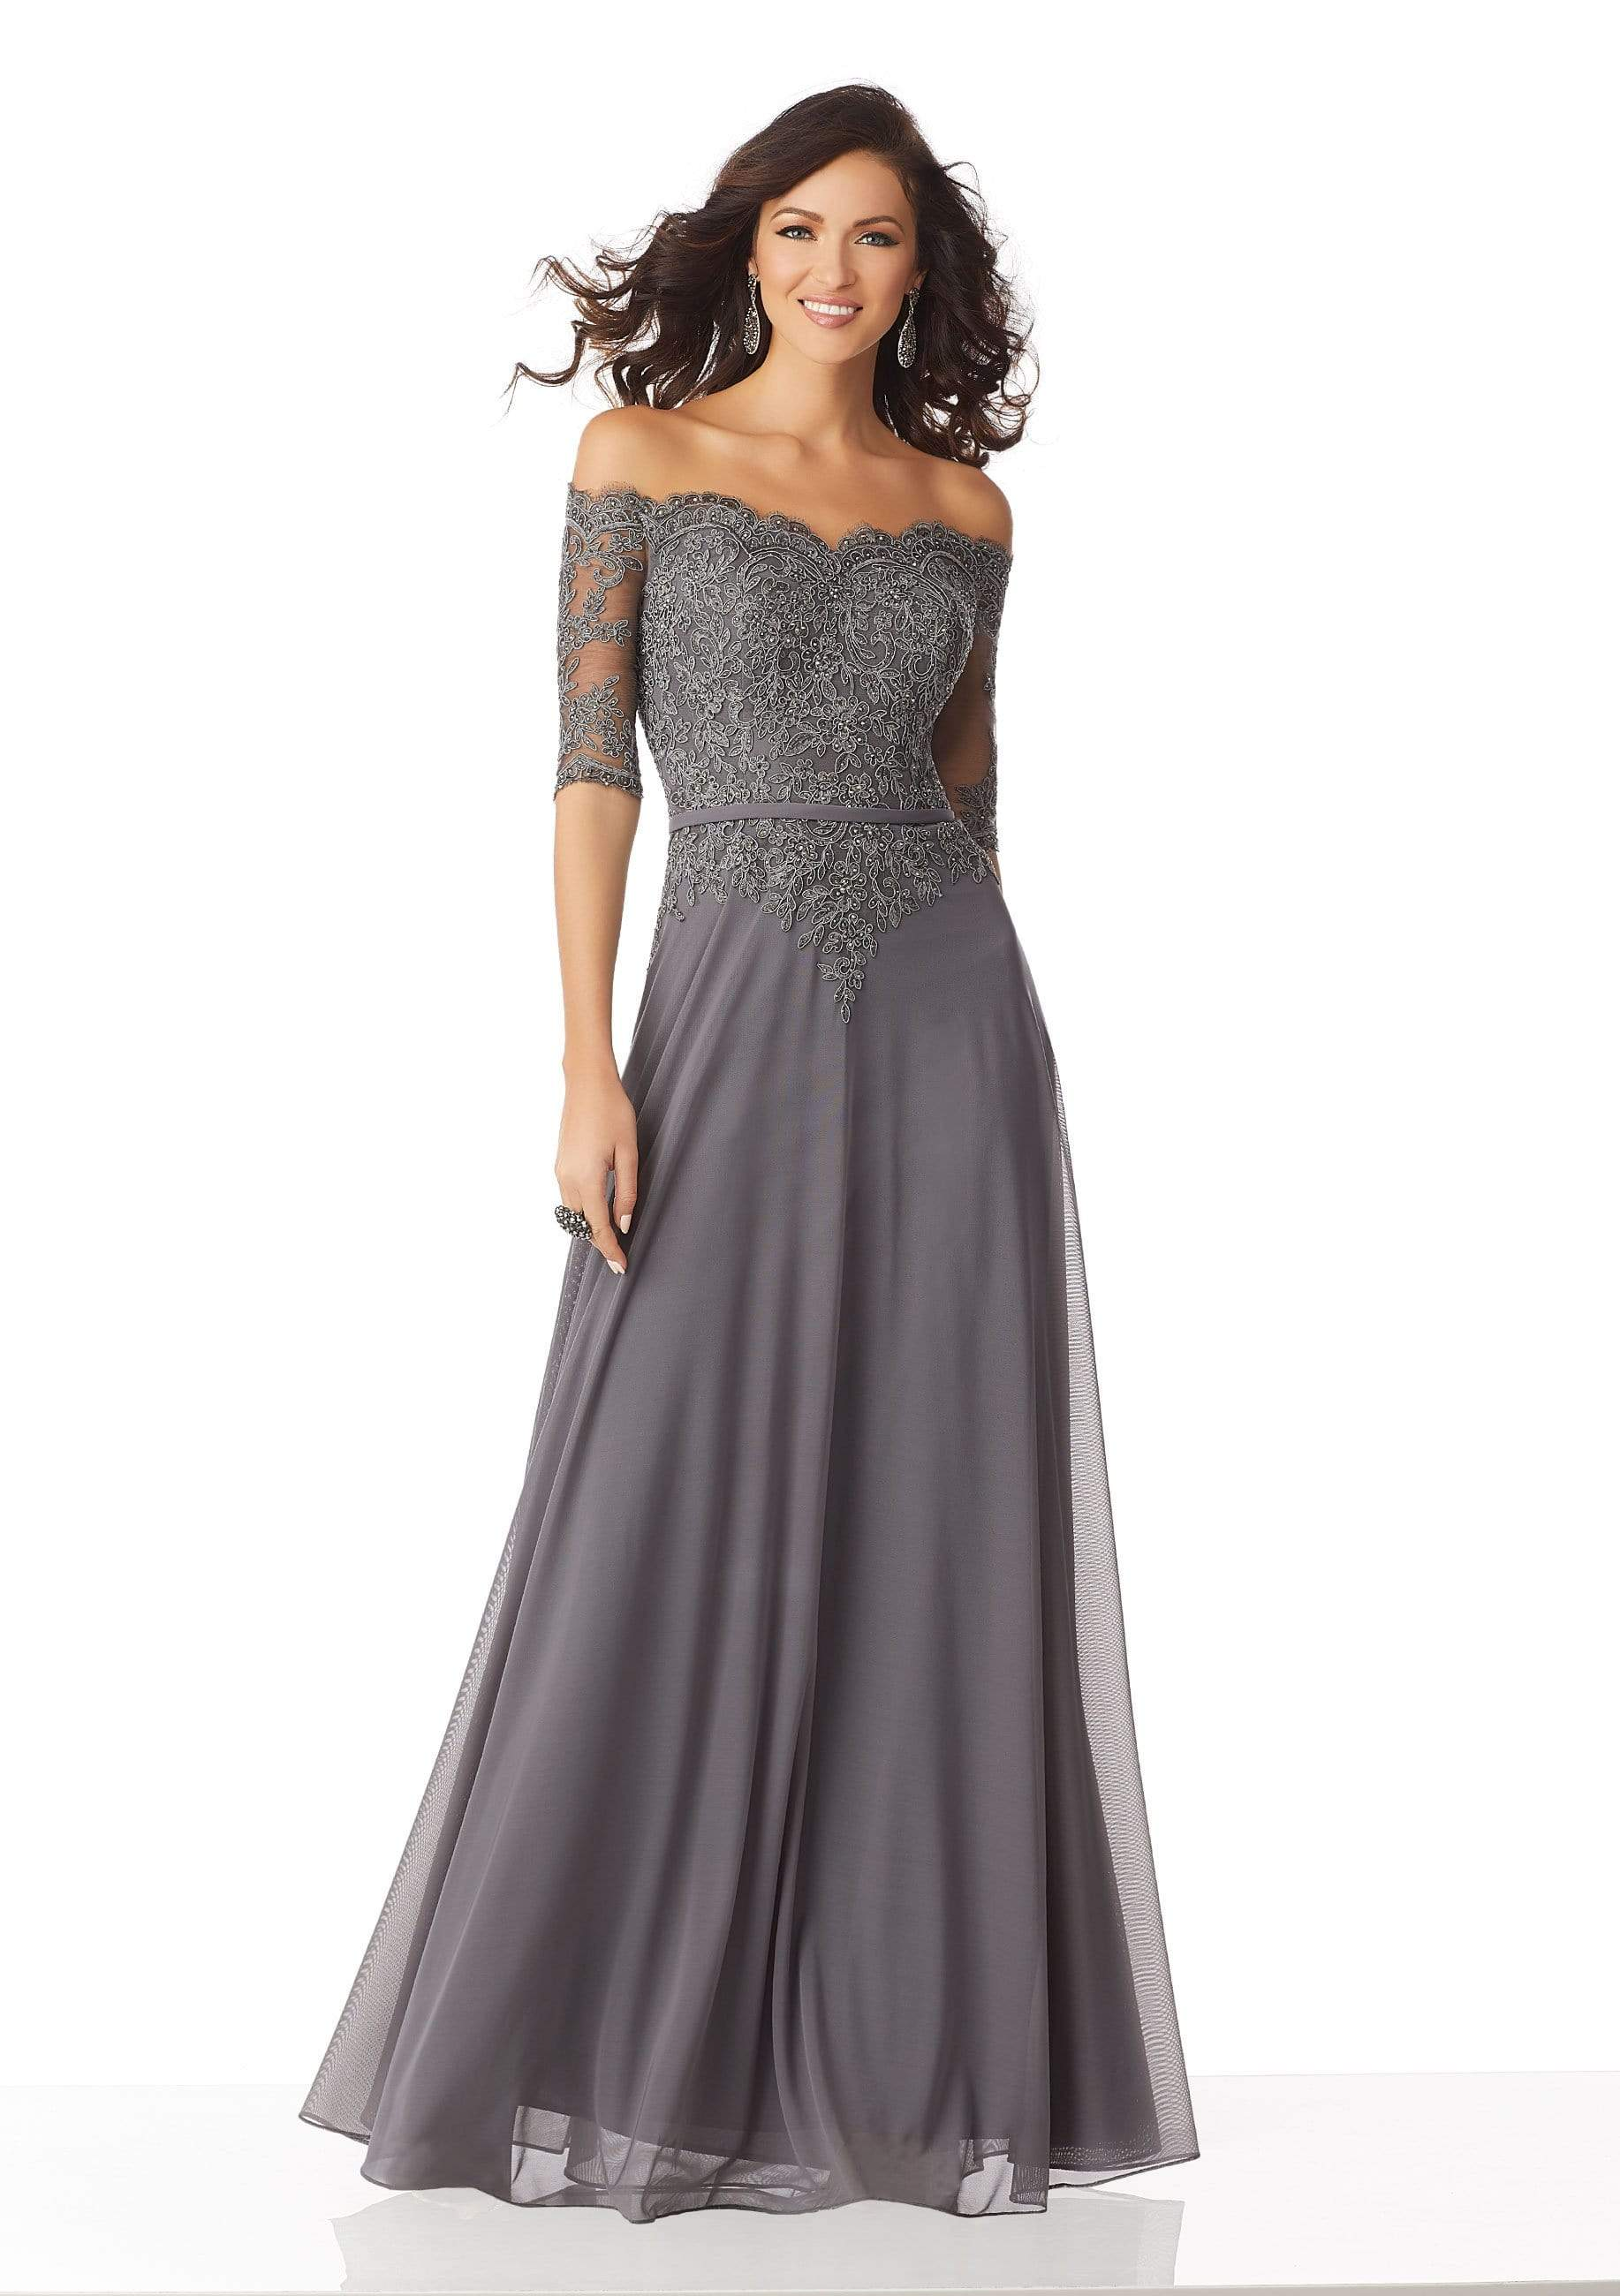 MGNY By Mori Lee - 71822 Beaded Lace Off-Shoulder A-Line Gown Mother of the Bride Dresses 0 / Charcoal